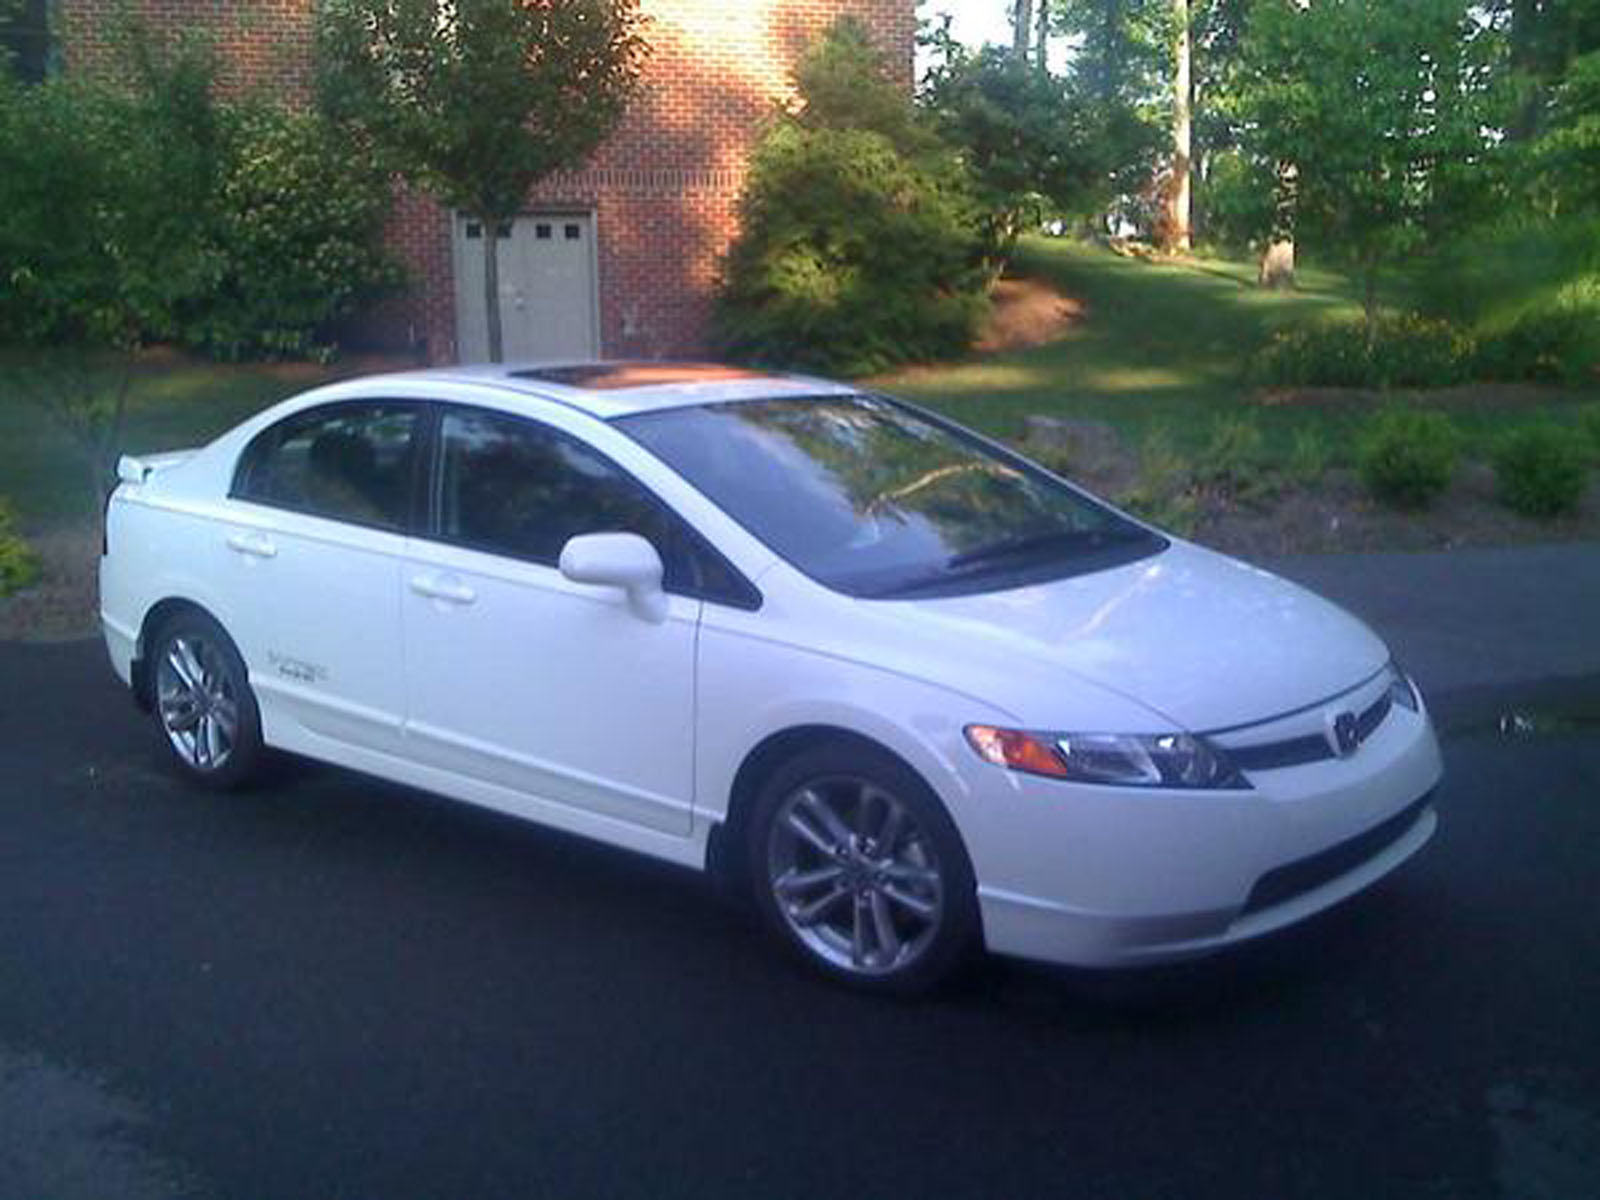 2008 honda civic si price reduced for sale lewisburg. Black Bedroom Furniture Sets. Home Design Ideas